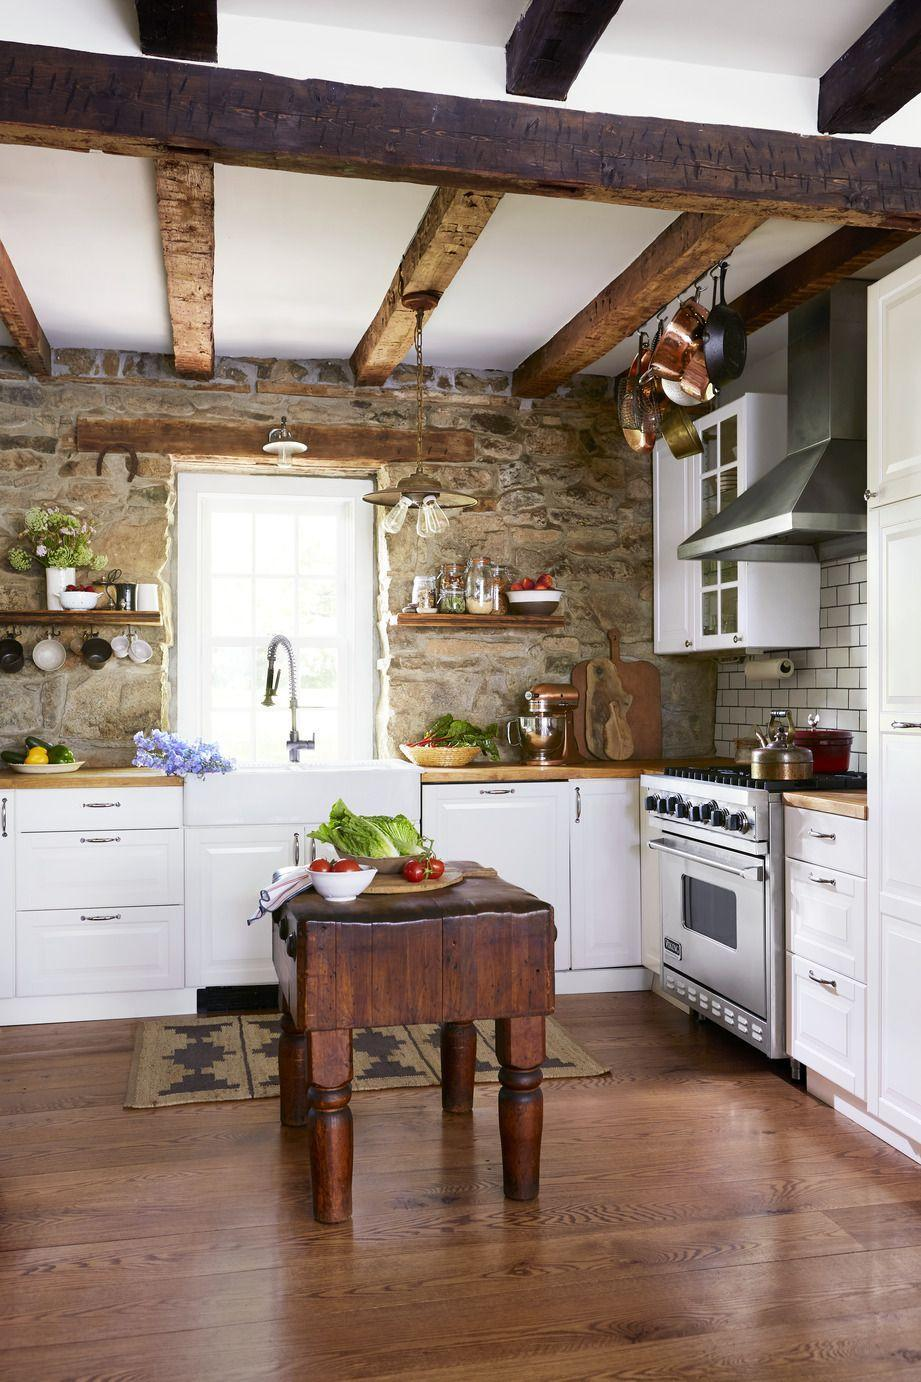 <p>With its dreamy stone wall, these homeowners brought in white cabinets, countertops, and a huge apron-front sink (all from Ikea). The adjacent wall is covered in classic white subway tile with dark gray grout, which lends a graphic, modern touch to the otherwise rustic space.</p>